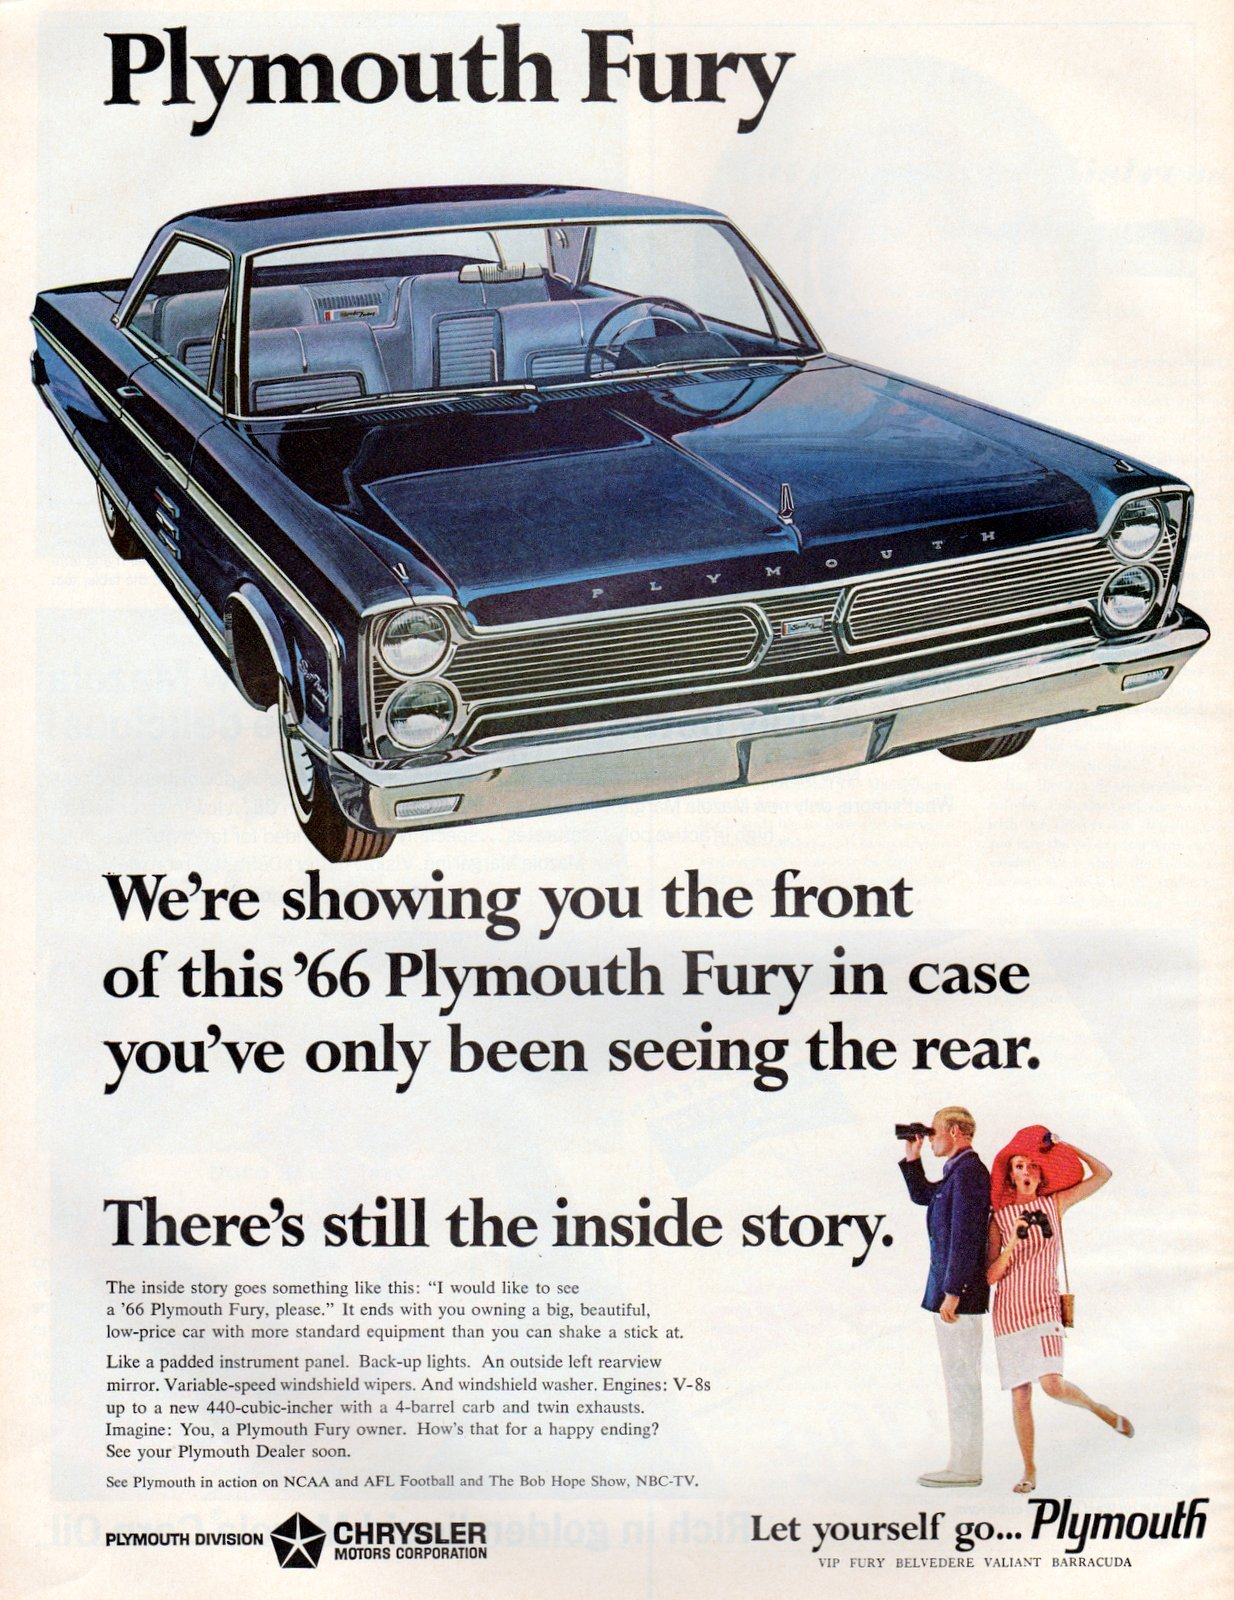 The '66 Plymouth Fury